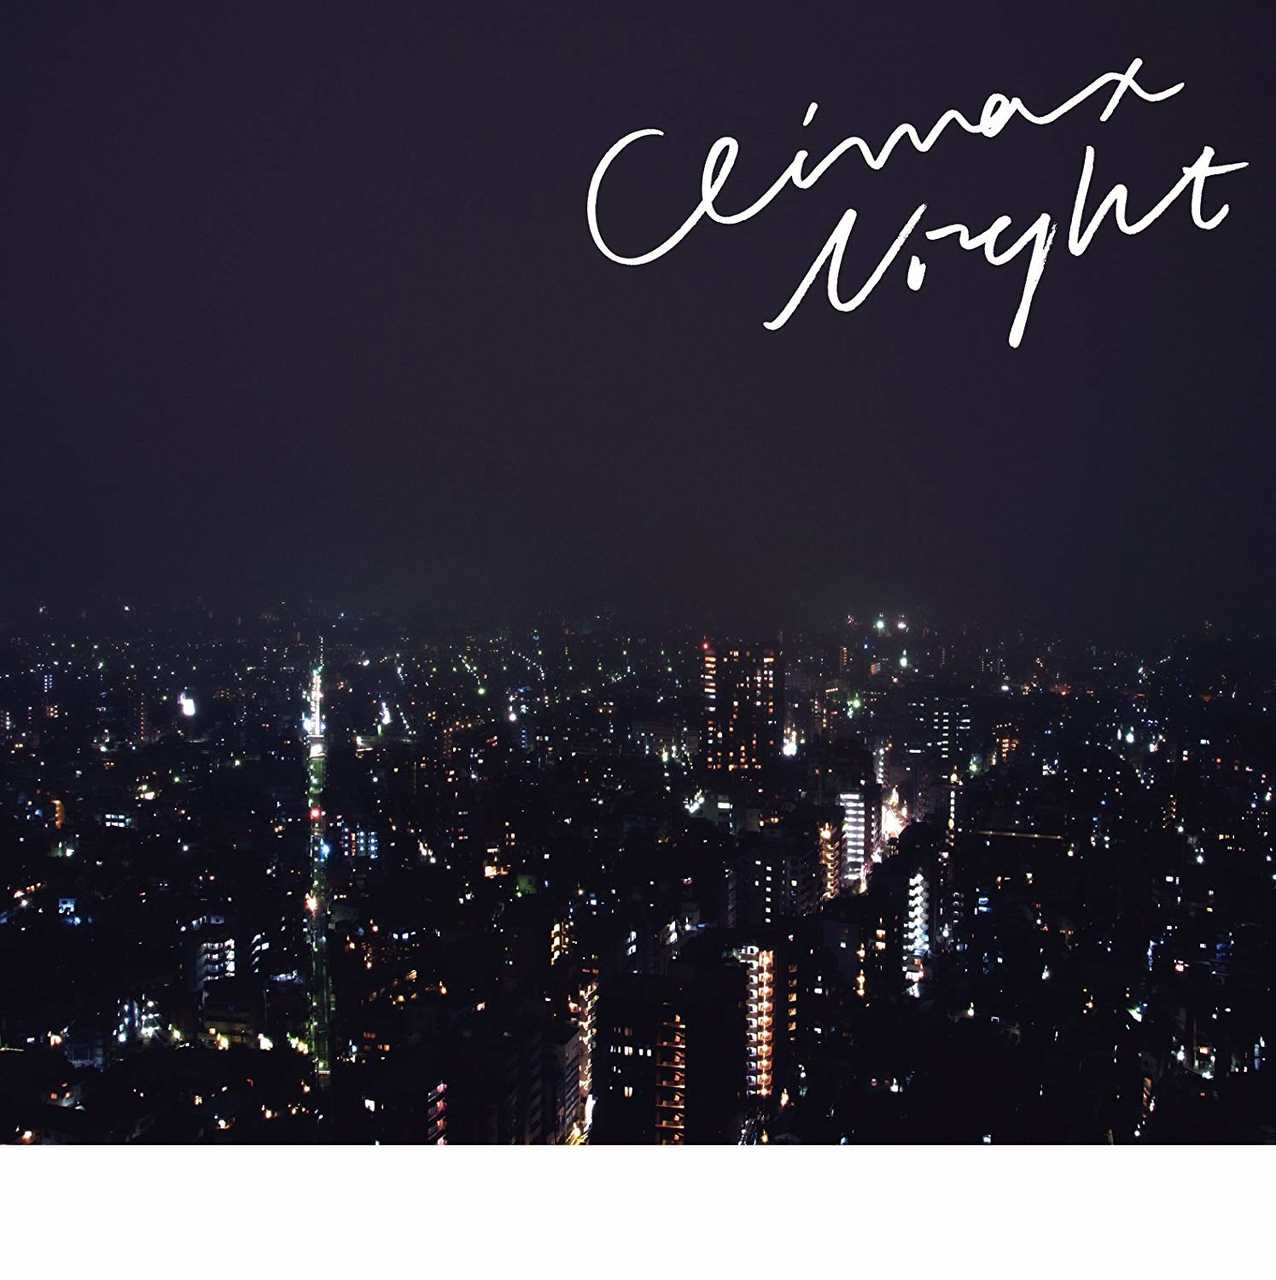 yogee new waves「CLIMAX NIGHT」その都会的な雰囲気の原点を探る